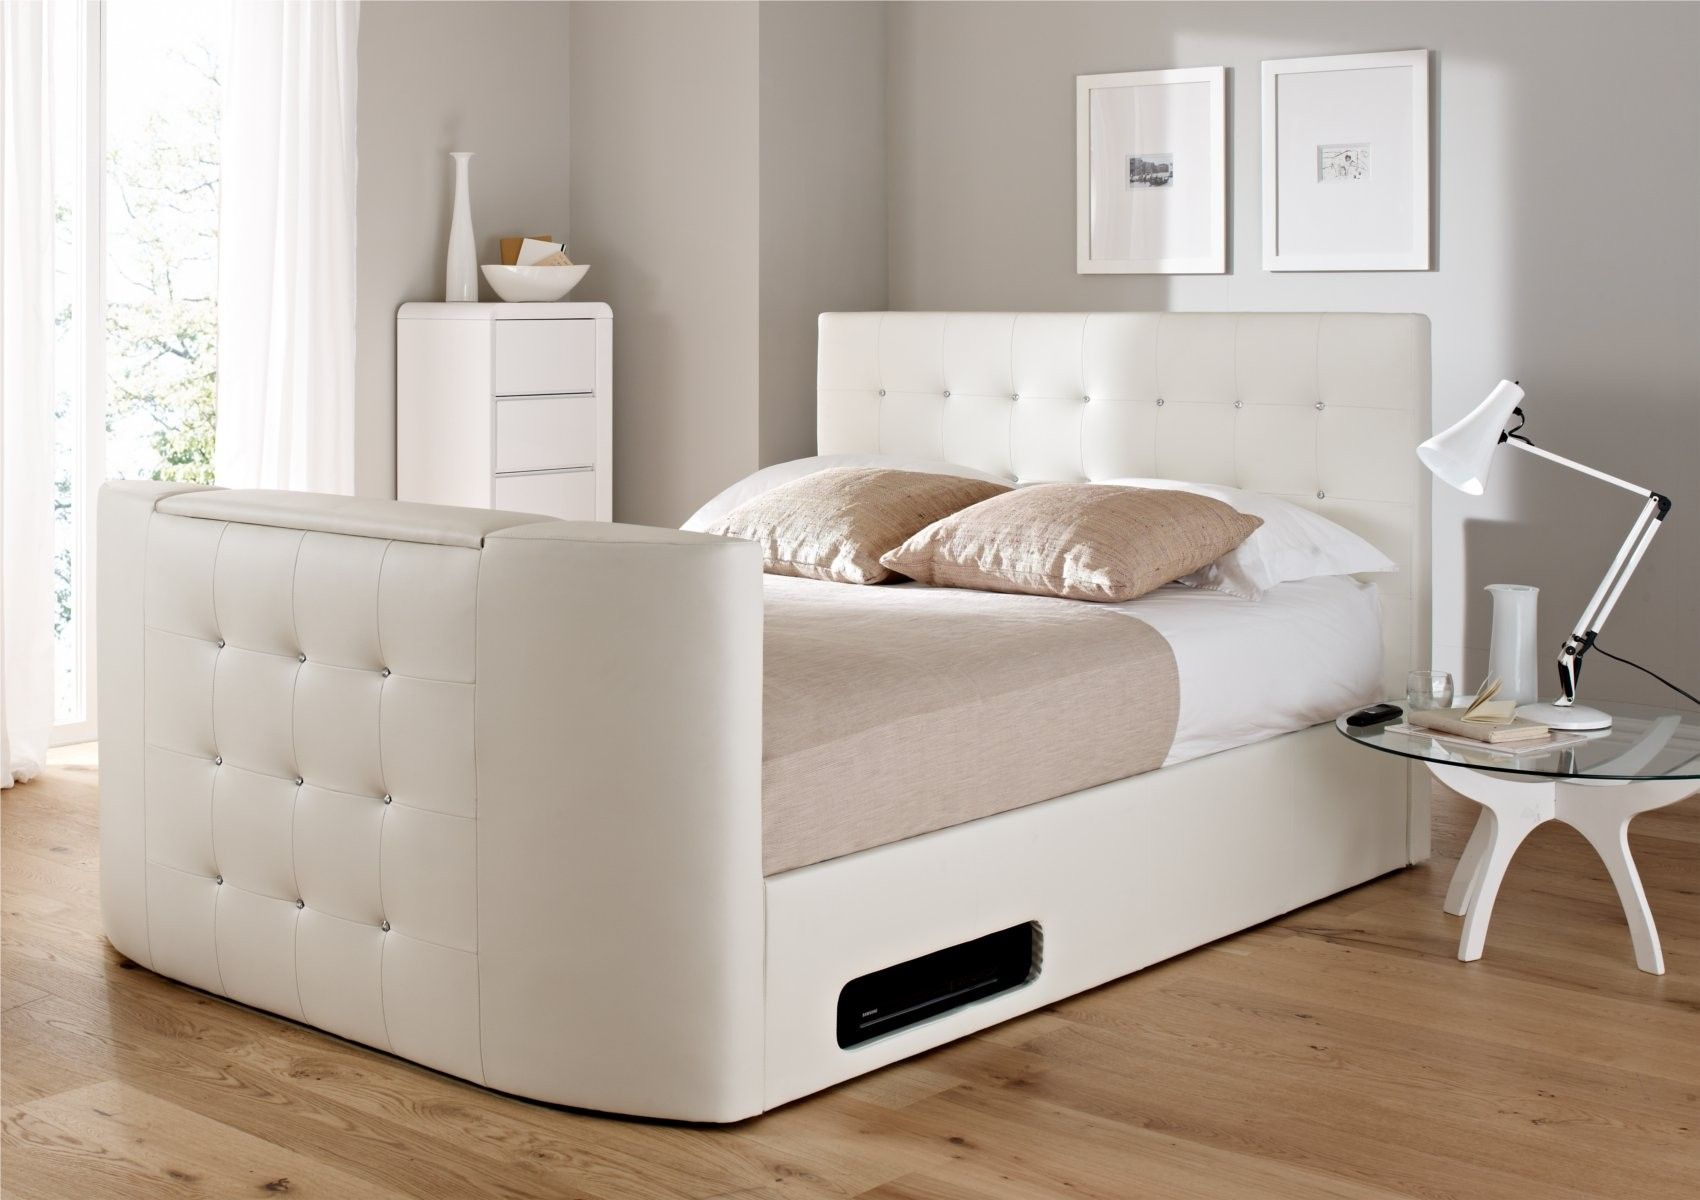 Cool Tv Bed With Storage Bedroom Decor Furniture Tv Beds Machost Co Dining Chair Design Ideas Machostcouk